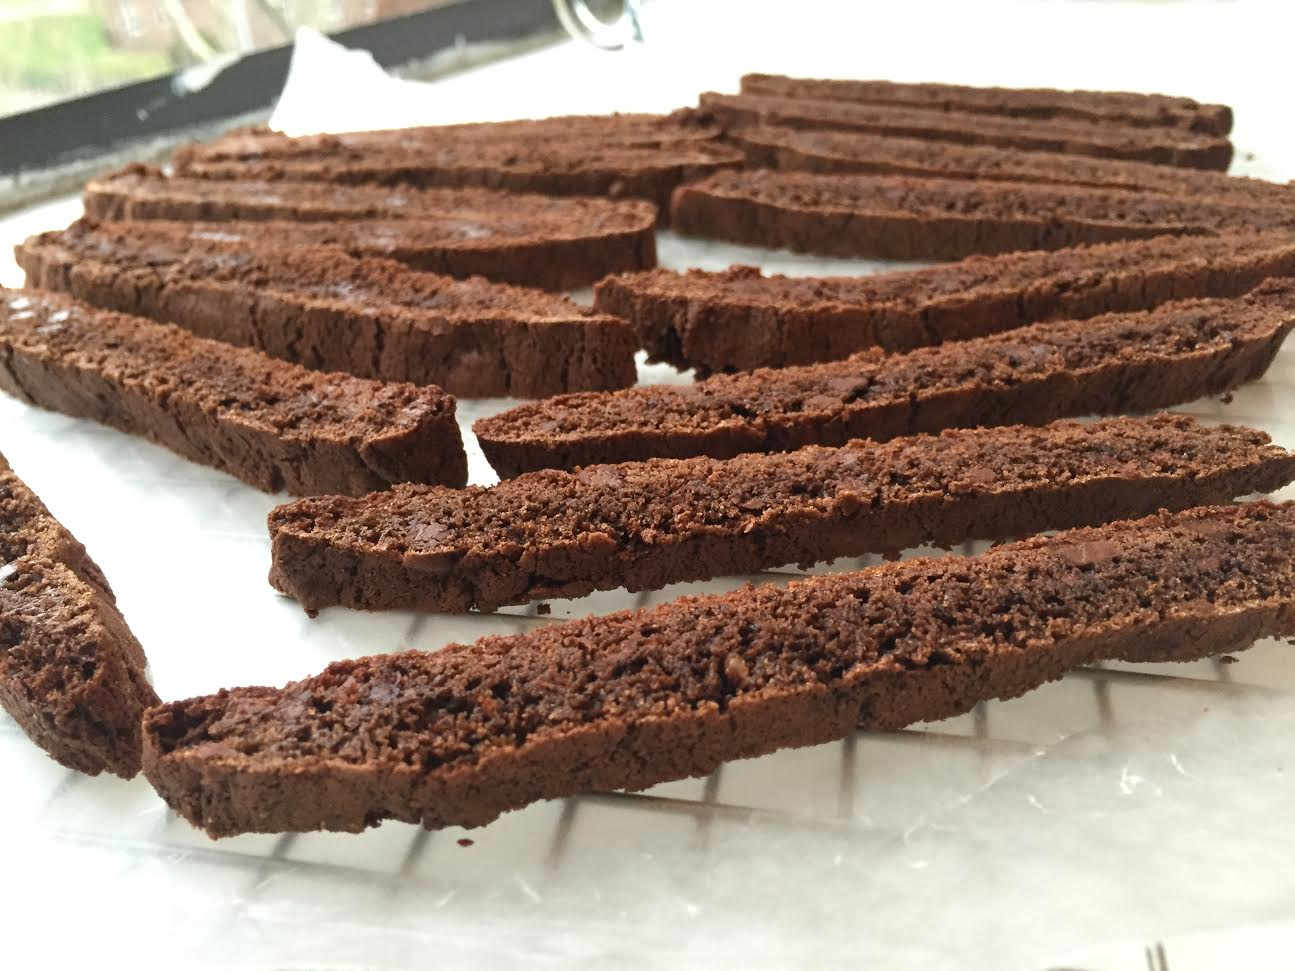 Homemade chocolate biscotti